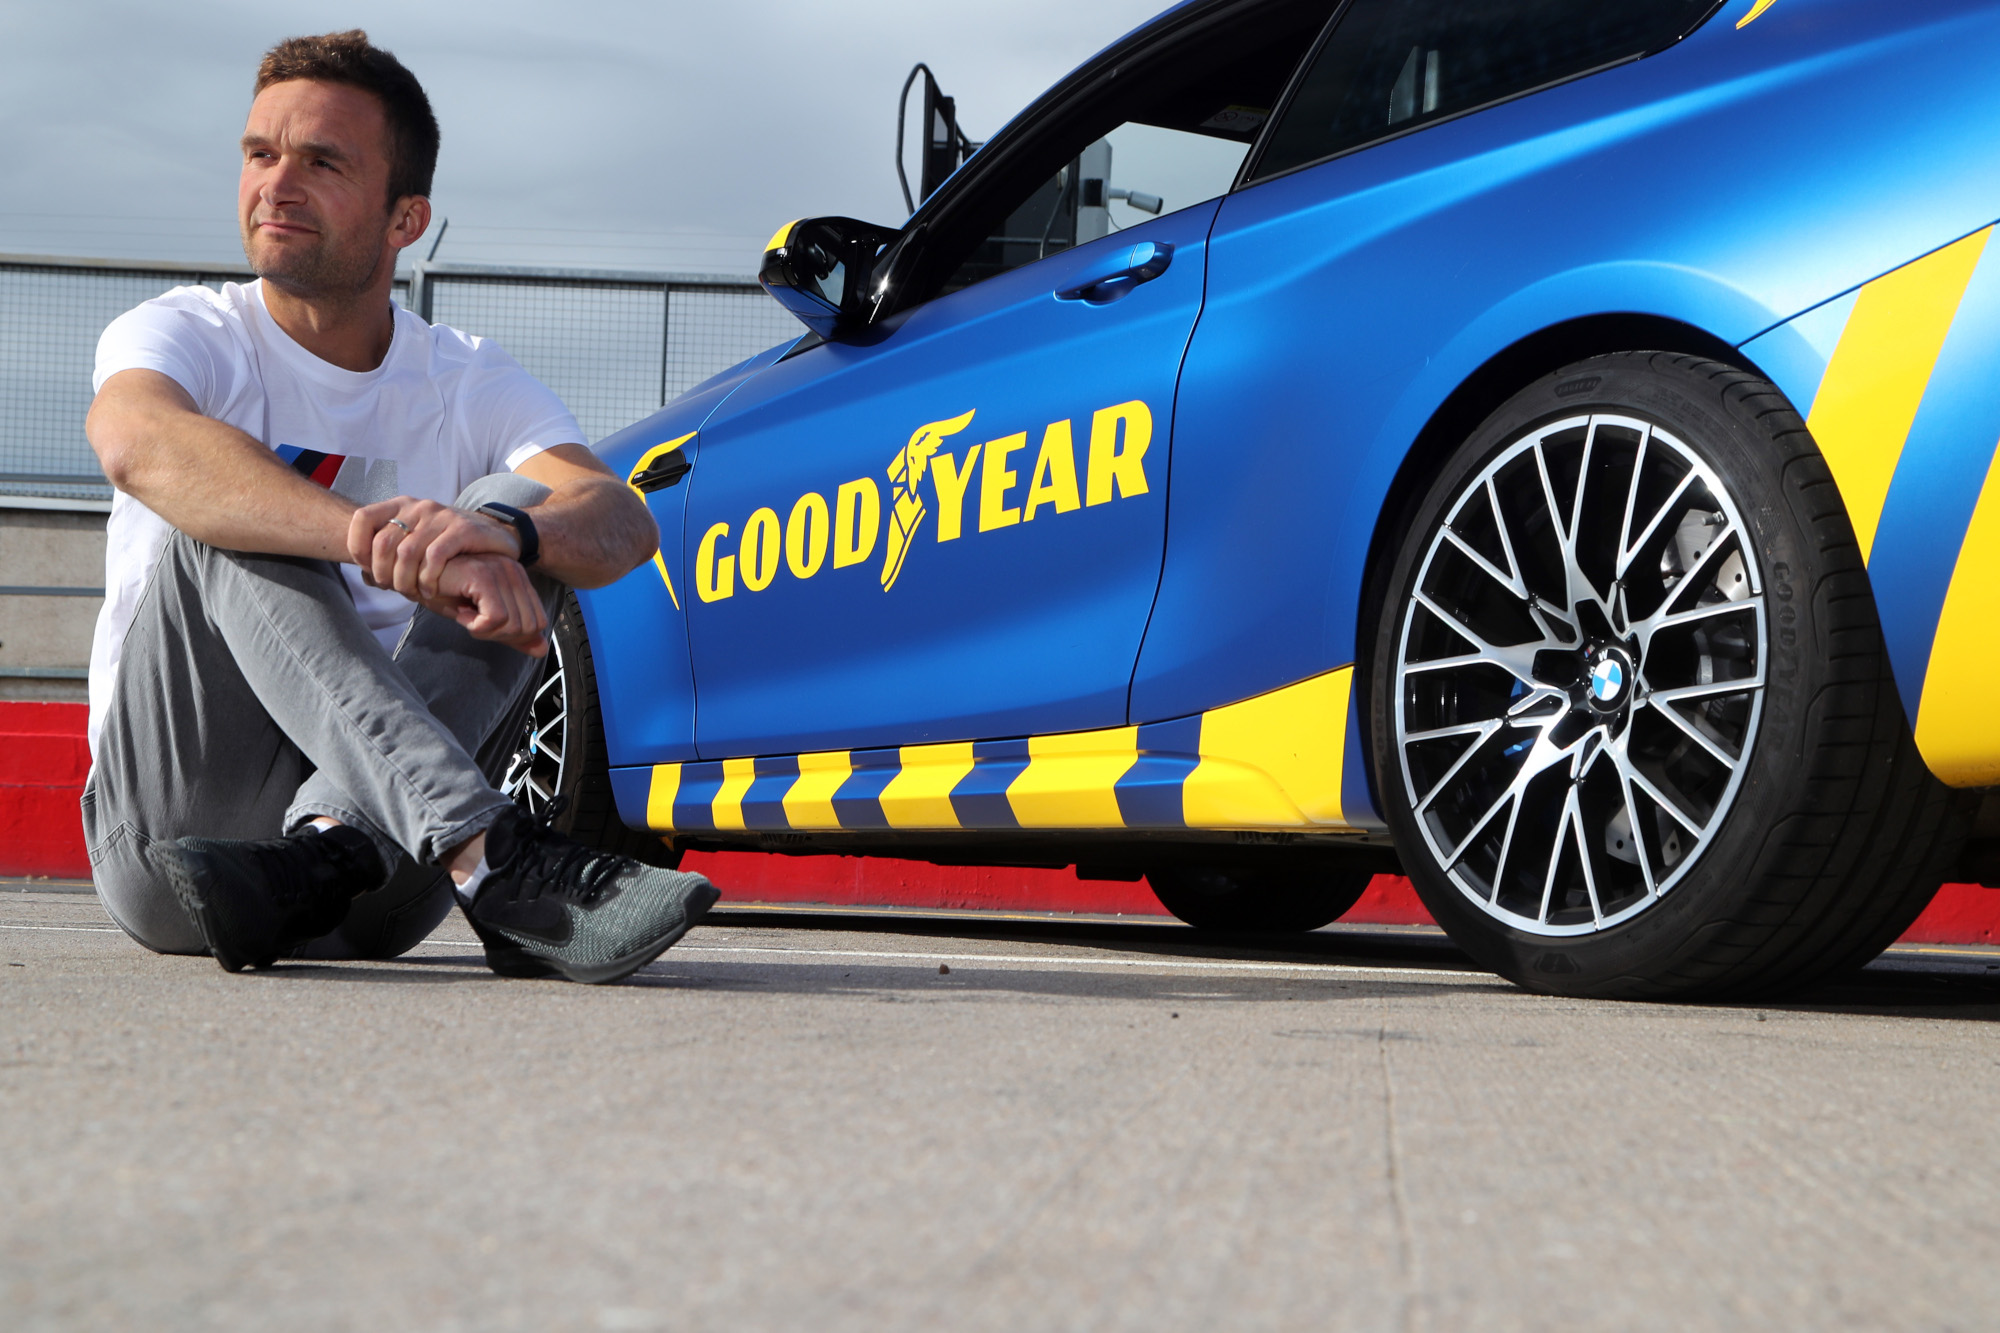 BTCC champion tests Goodyear Eagle F1 SuperSport tyres at Donington